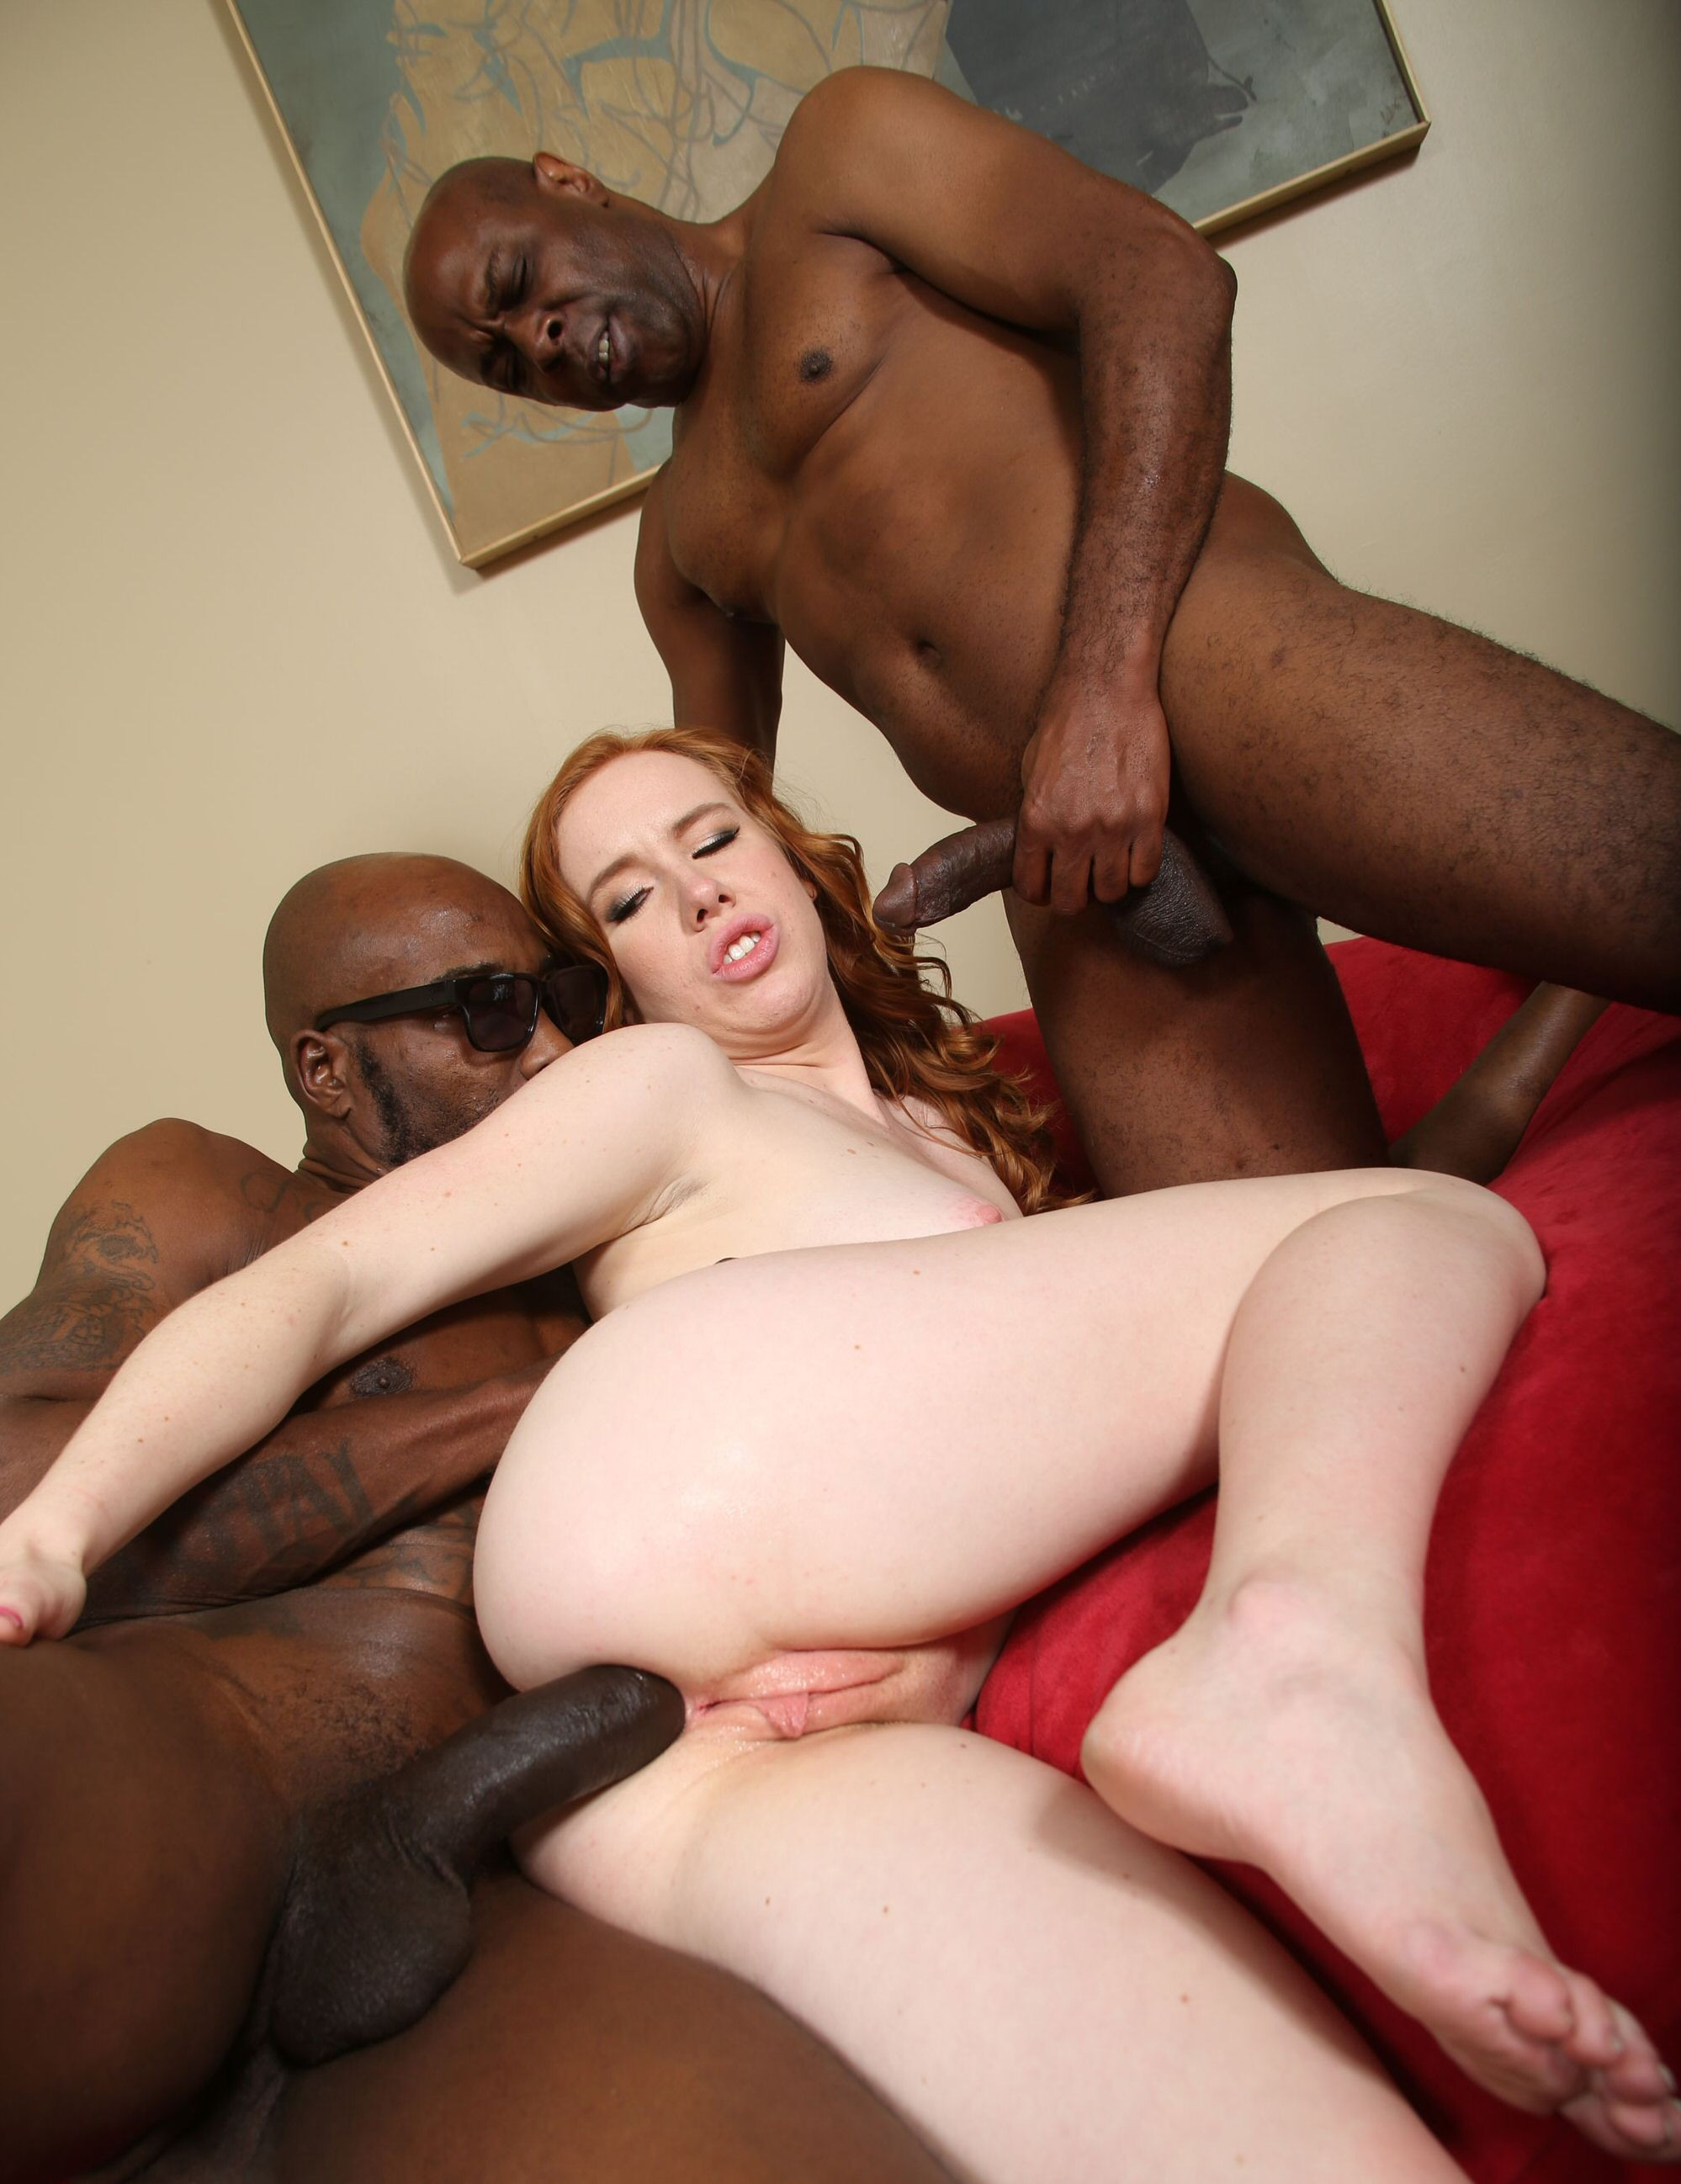 Interracial adult movies